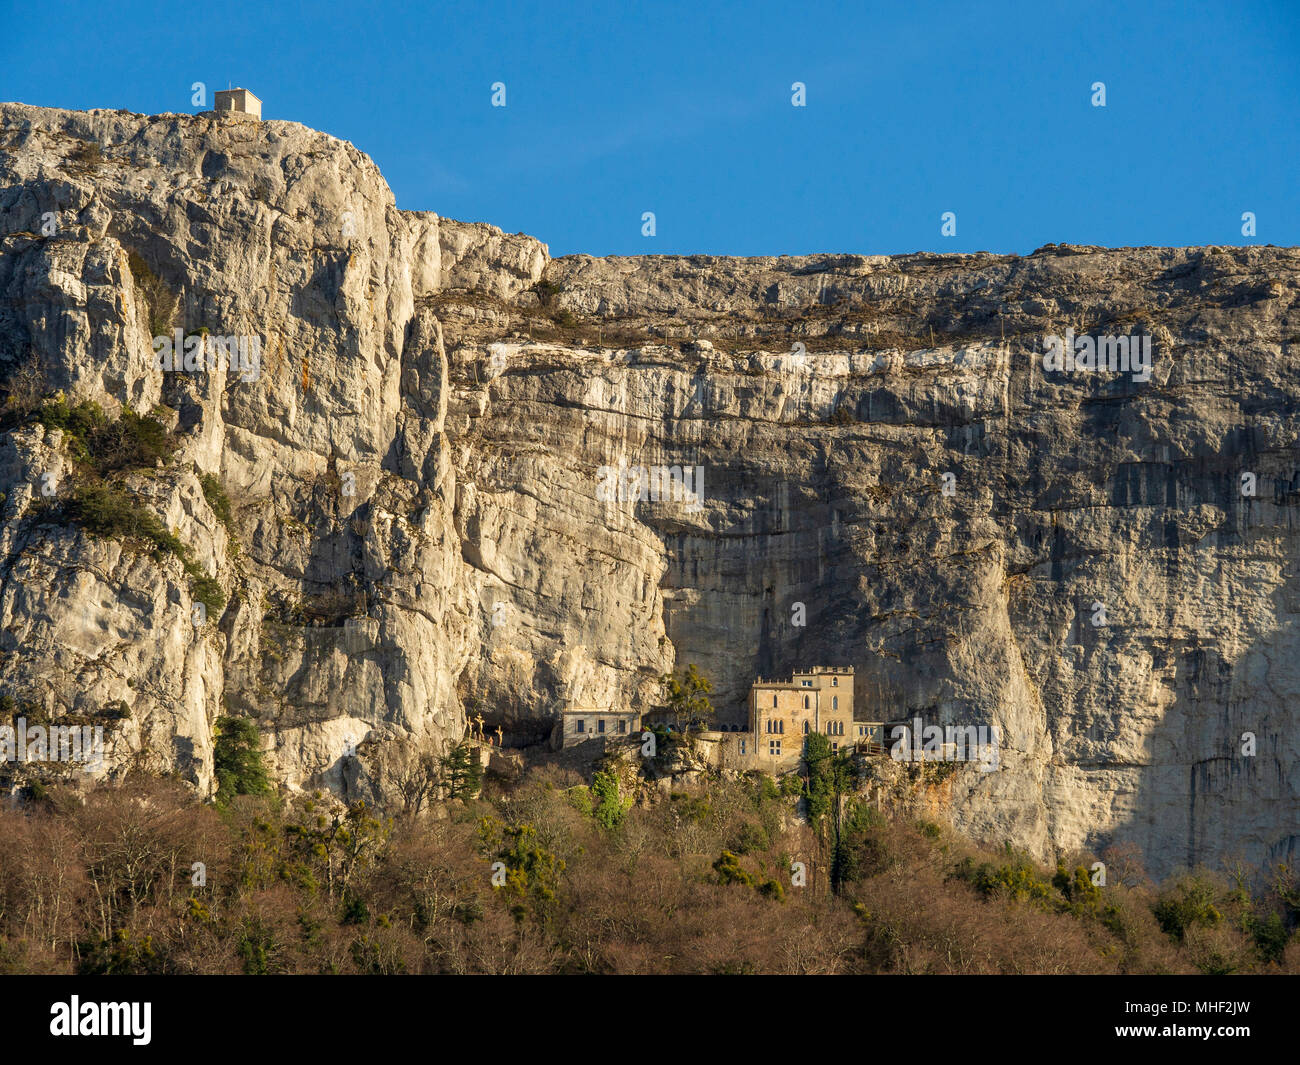 Sanctuaire de la Sainte-Baume, cave of St. Mary Magdalene.. - Stock Image